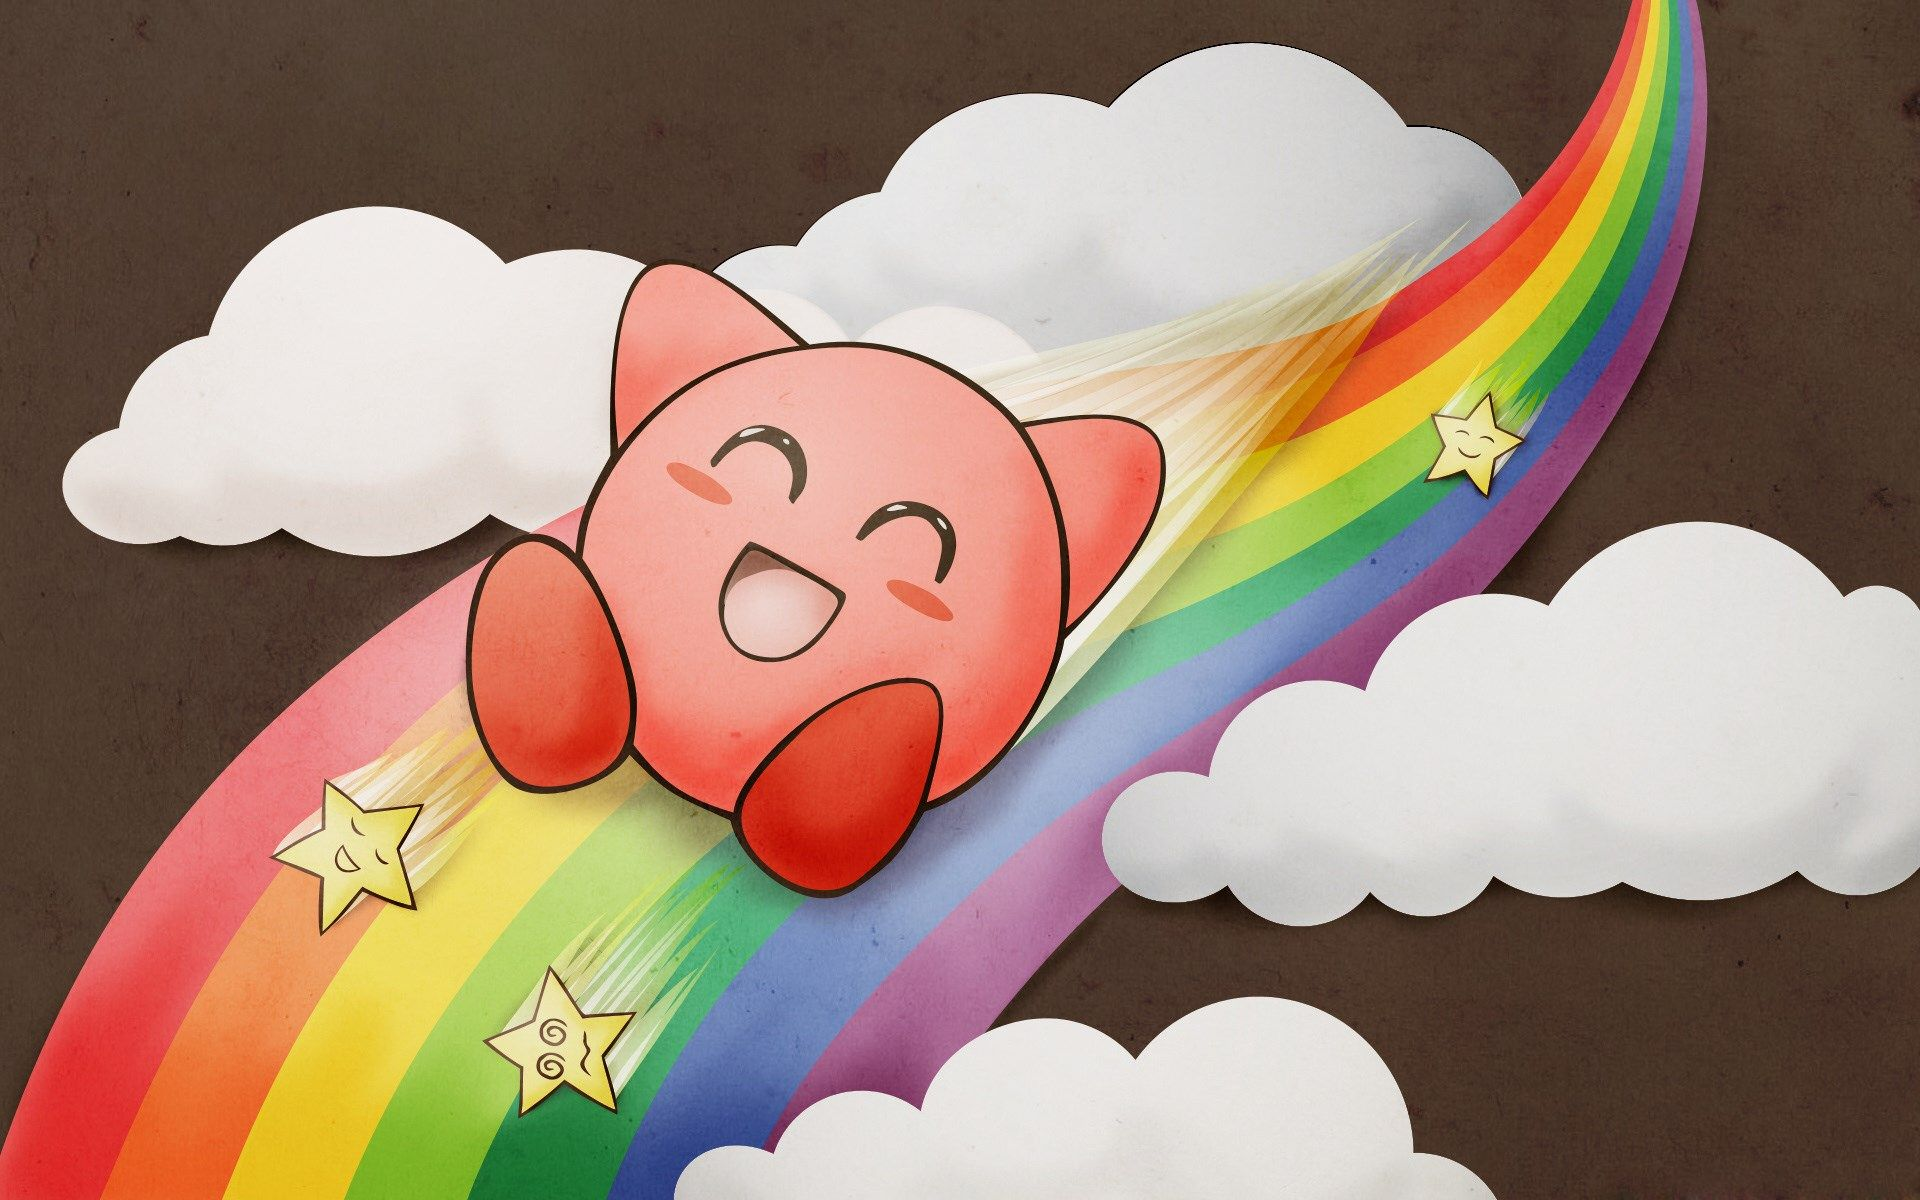 free hd kirby wallpapers pictures Pokemon, Videojuegos